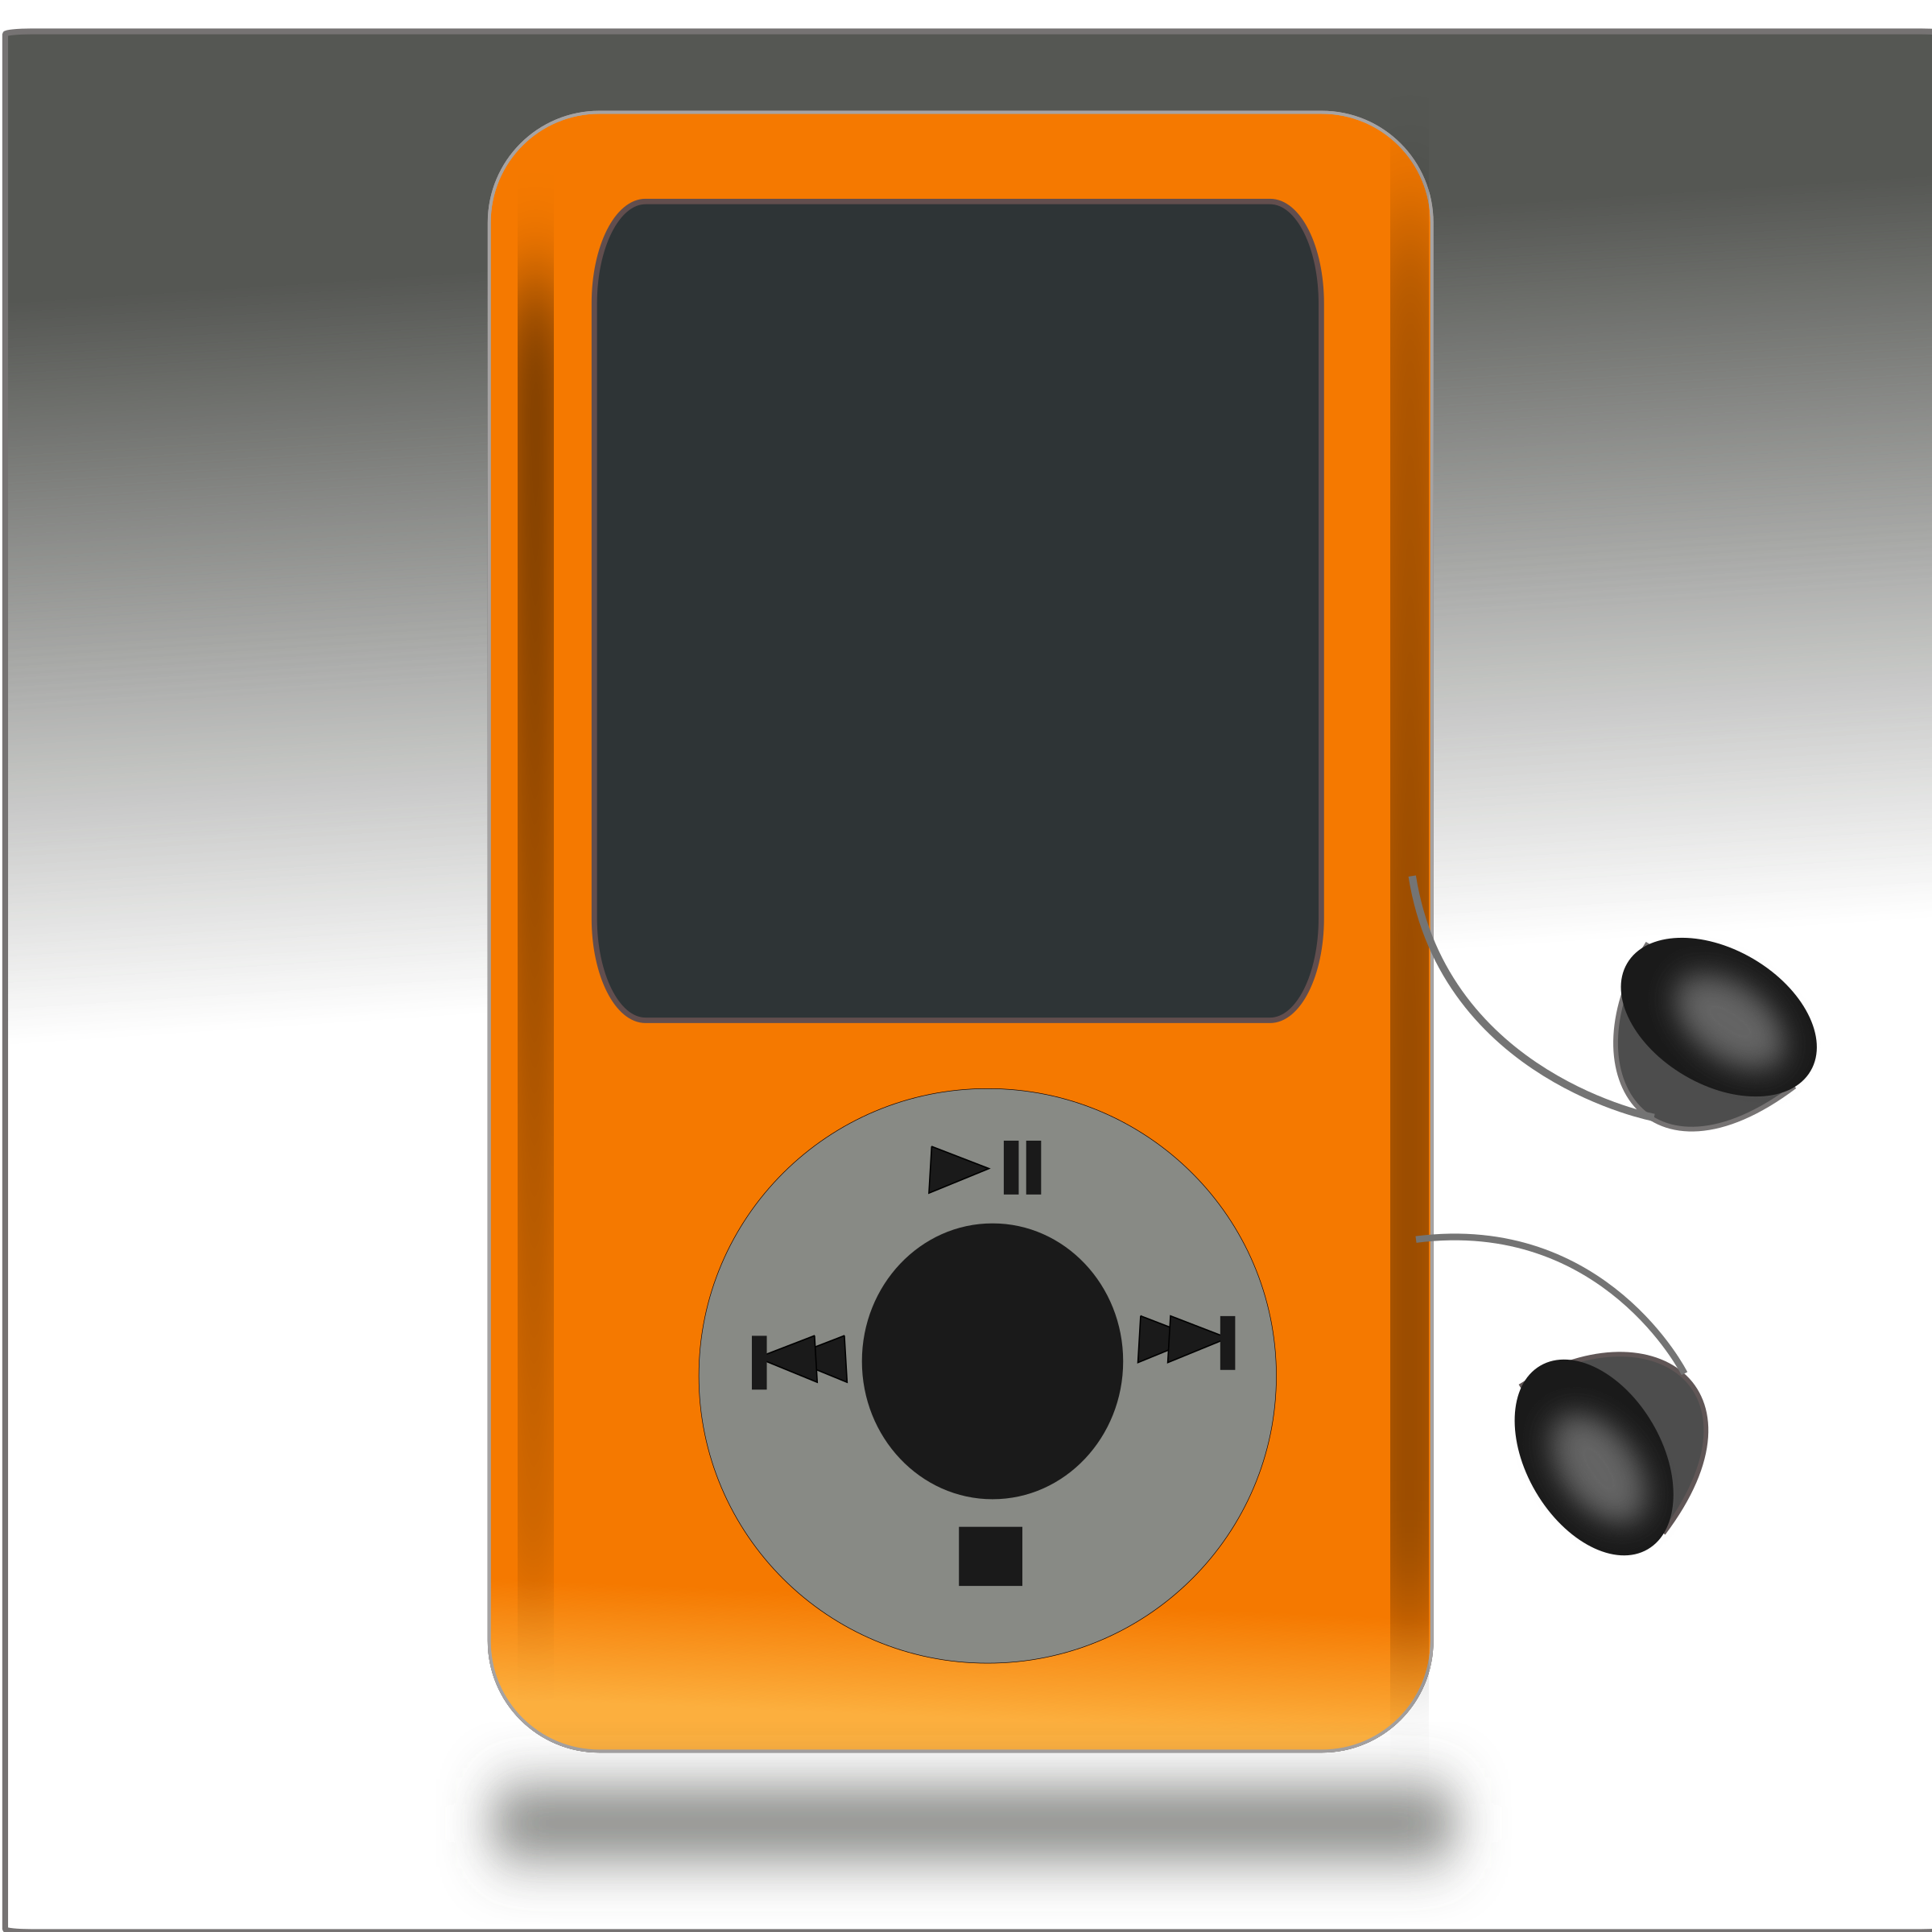 Electronics clipart electronic media. Netalloy music player big